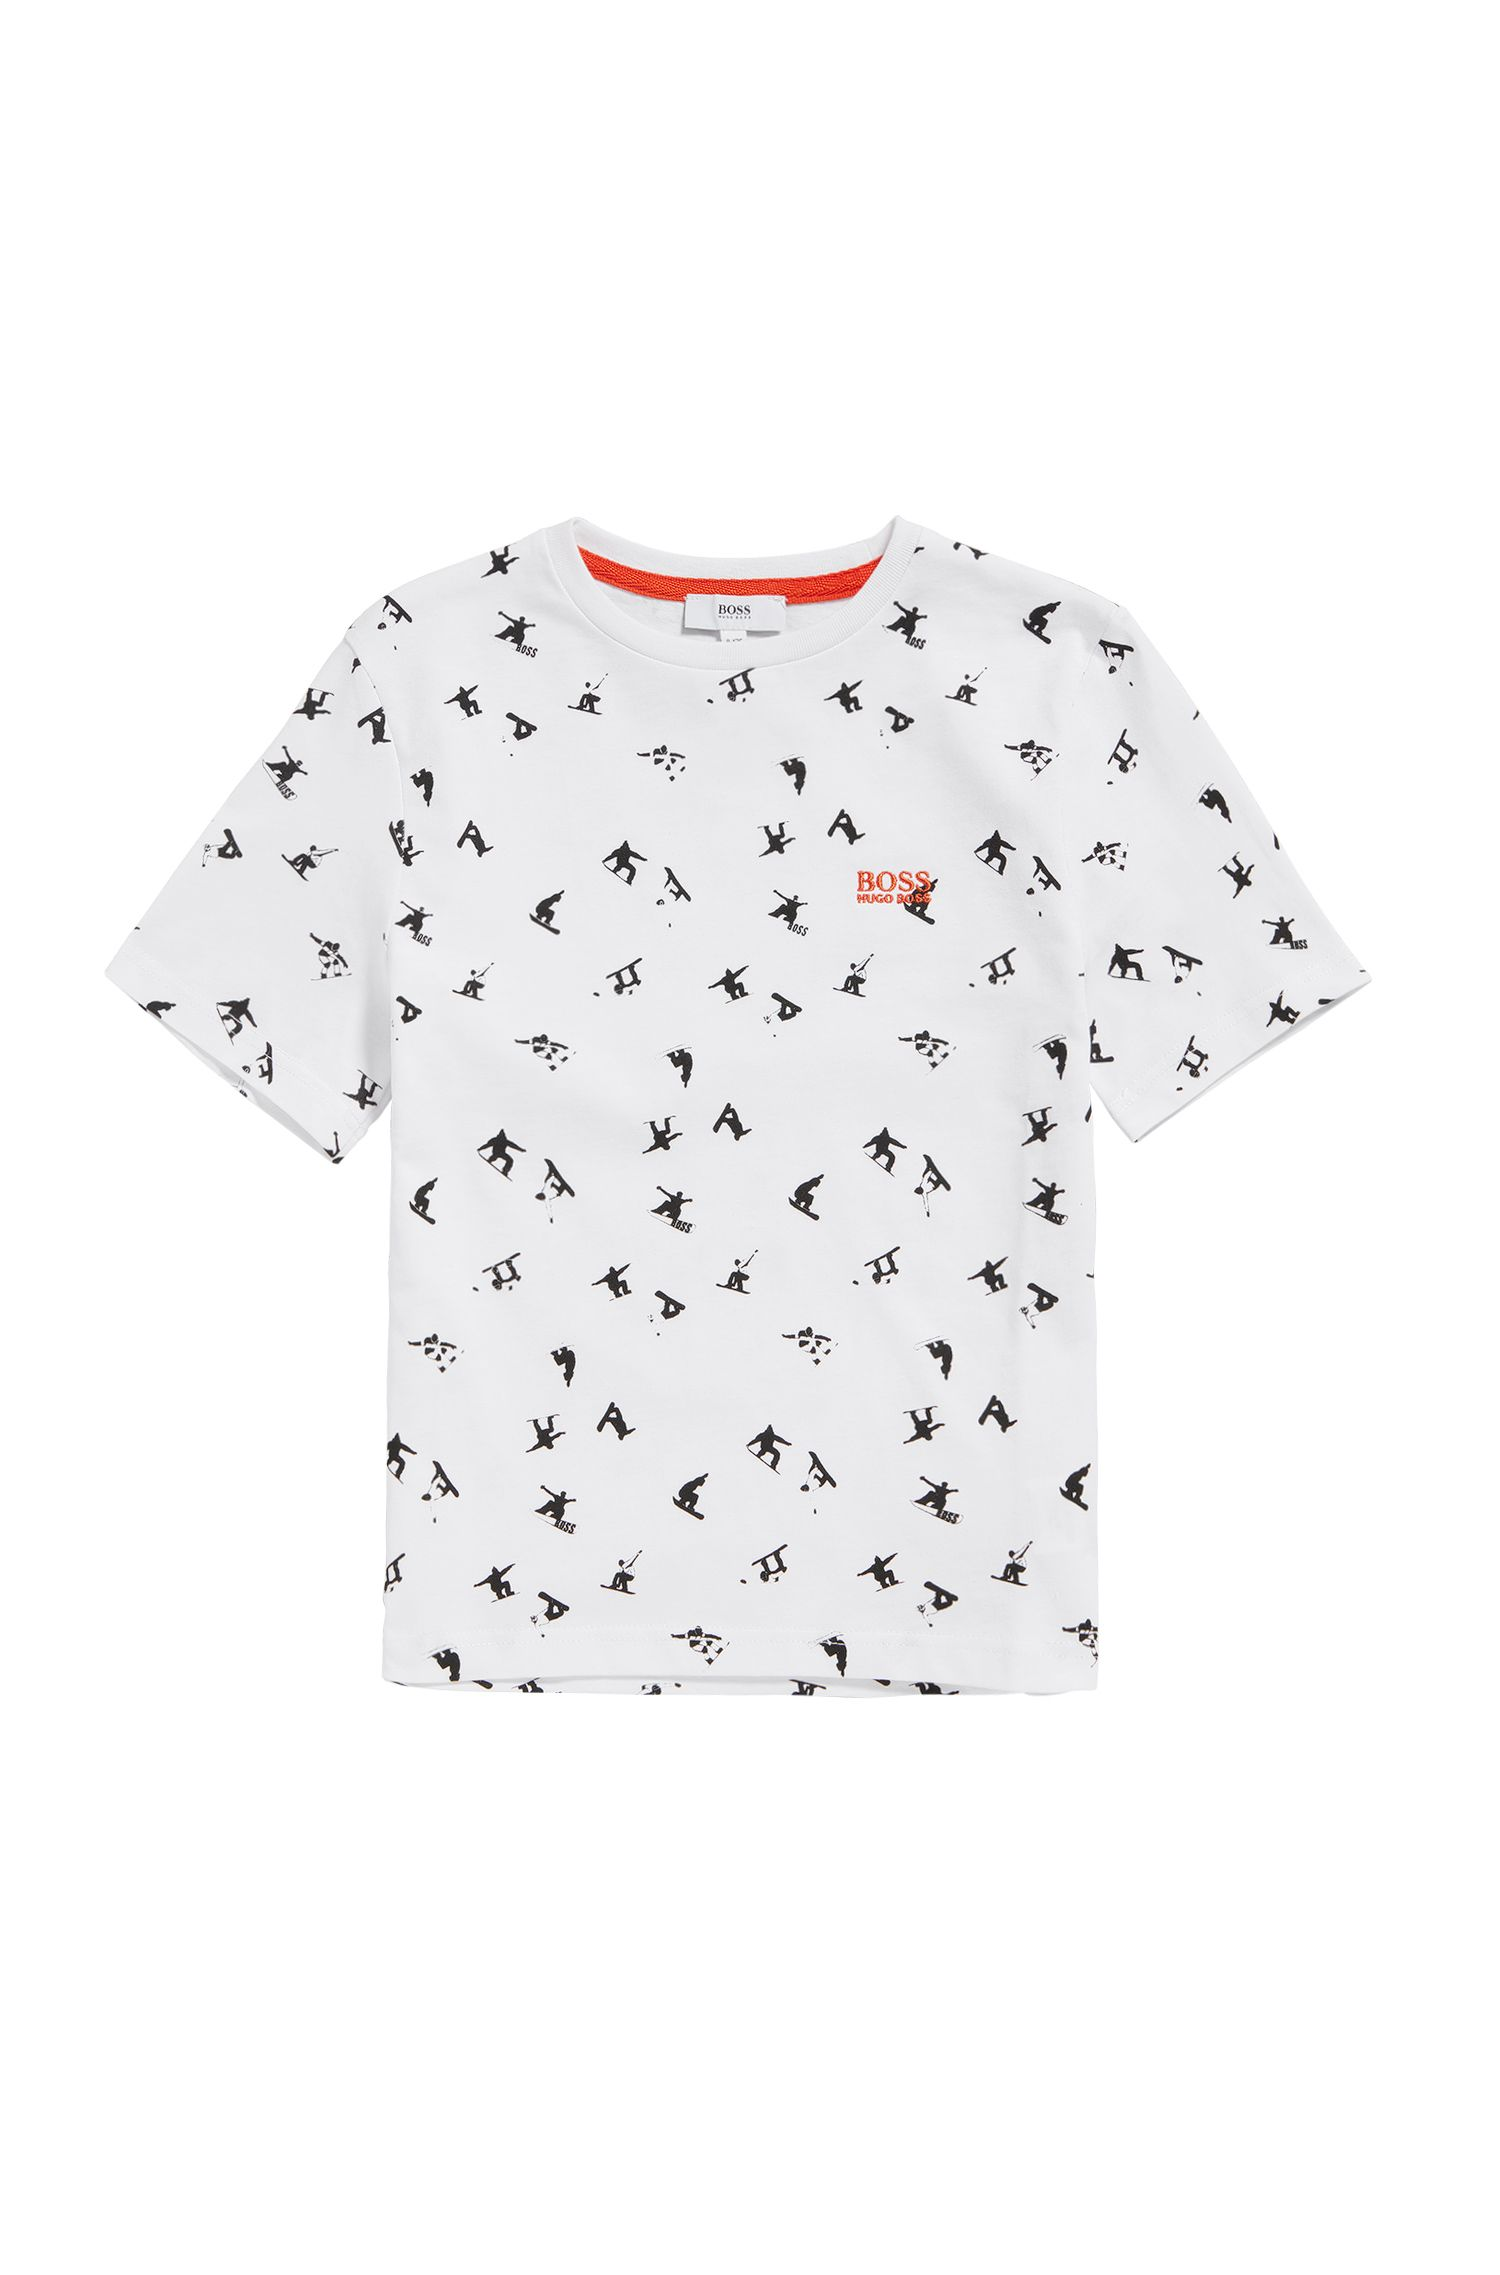 Kids' t-shirt in cotton with all-over print: 'J25A34'